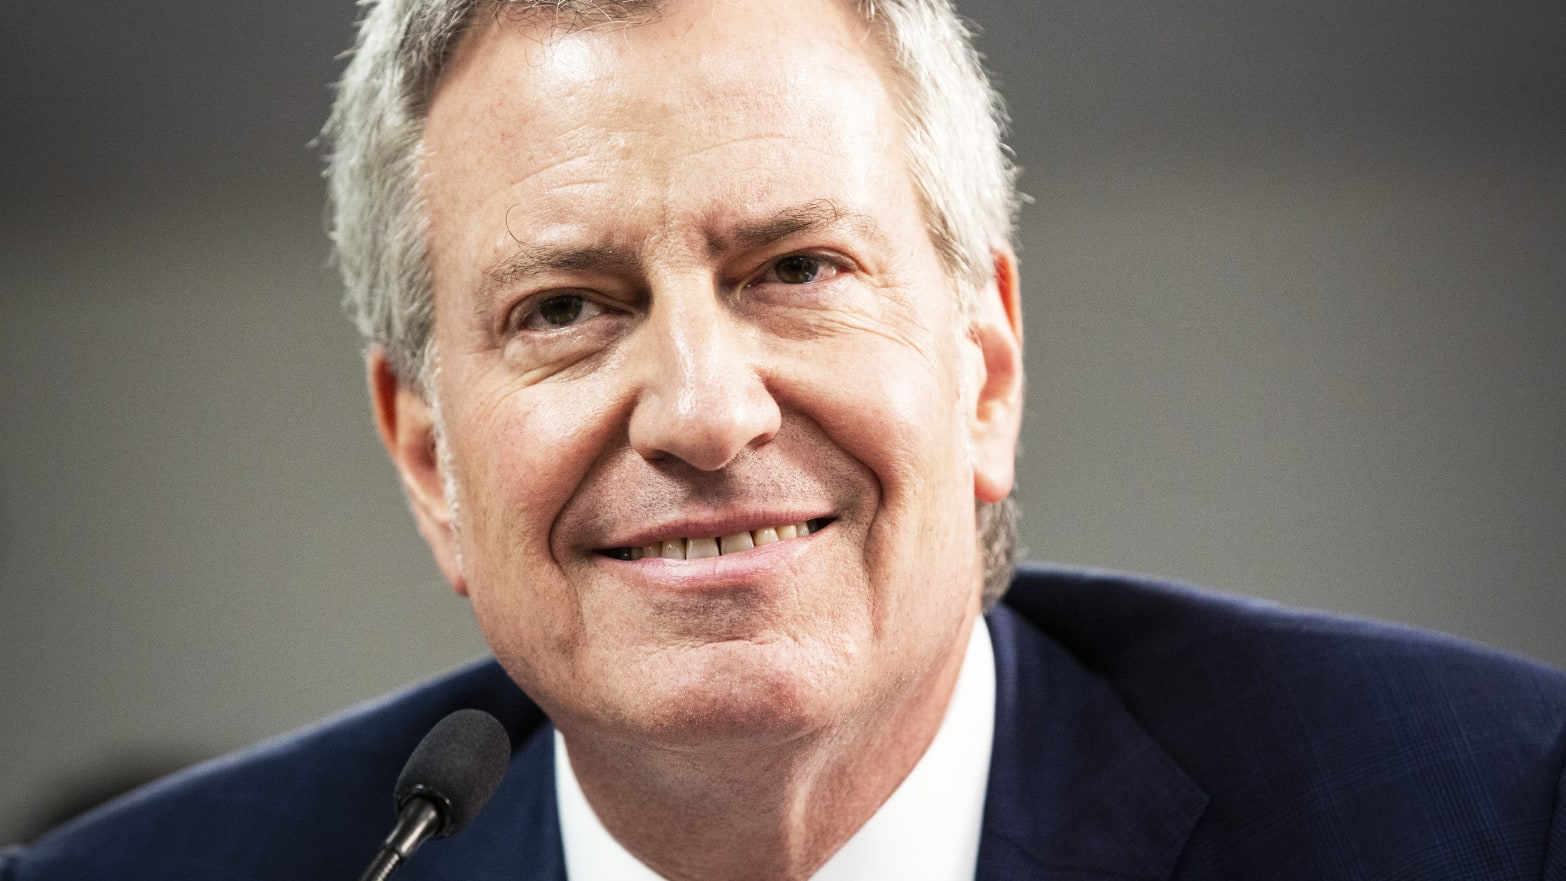 Bernie's Former Chief Strategist Tad Devine Talks to Bill de Blasio About 2020 Run